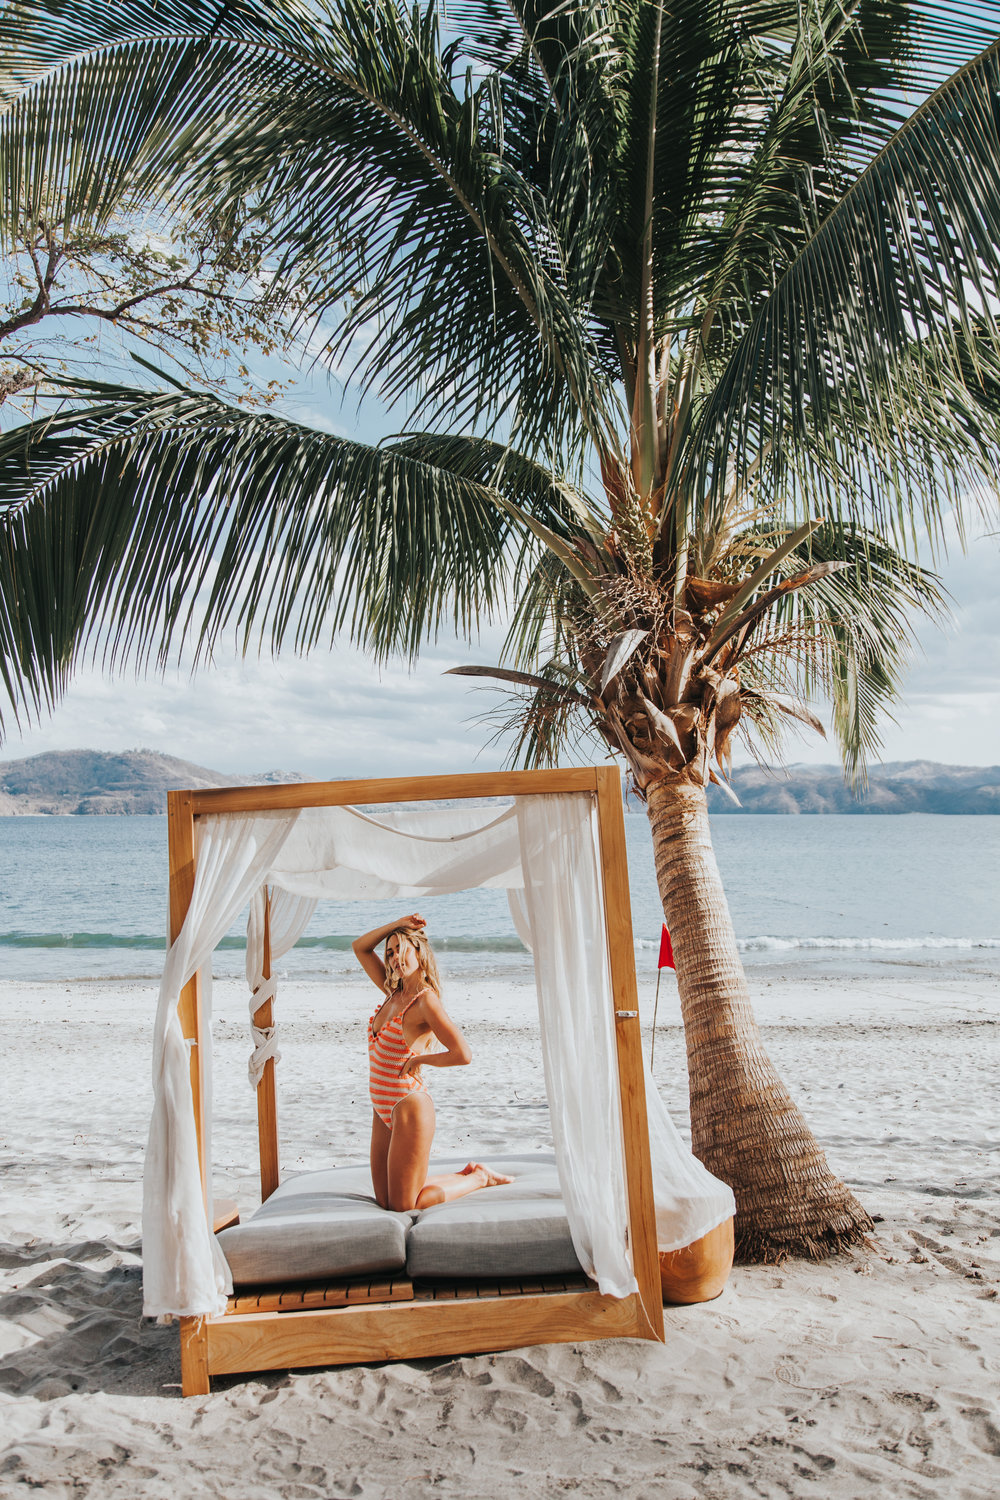 Photos by  Paige Owen  Faithfull Dress |  Tularosa  Swimsuit Via  Revolve  |  CJxMA  Melanie Auld Island Earrings,  Modern Hoop  Earrings, Babe Ring,  Signet  Ring|  Lovers & Friends  Dress via  Revolve  | Glassons Top + POSSE Skirt| Sabo Skirt Dress & Earrings